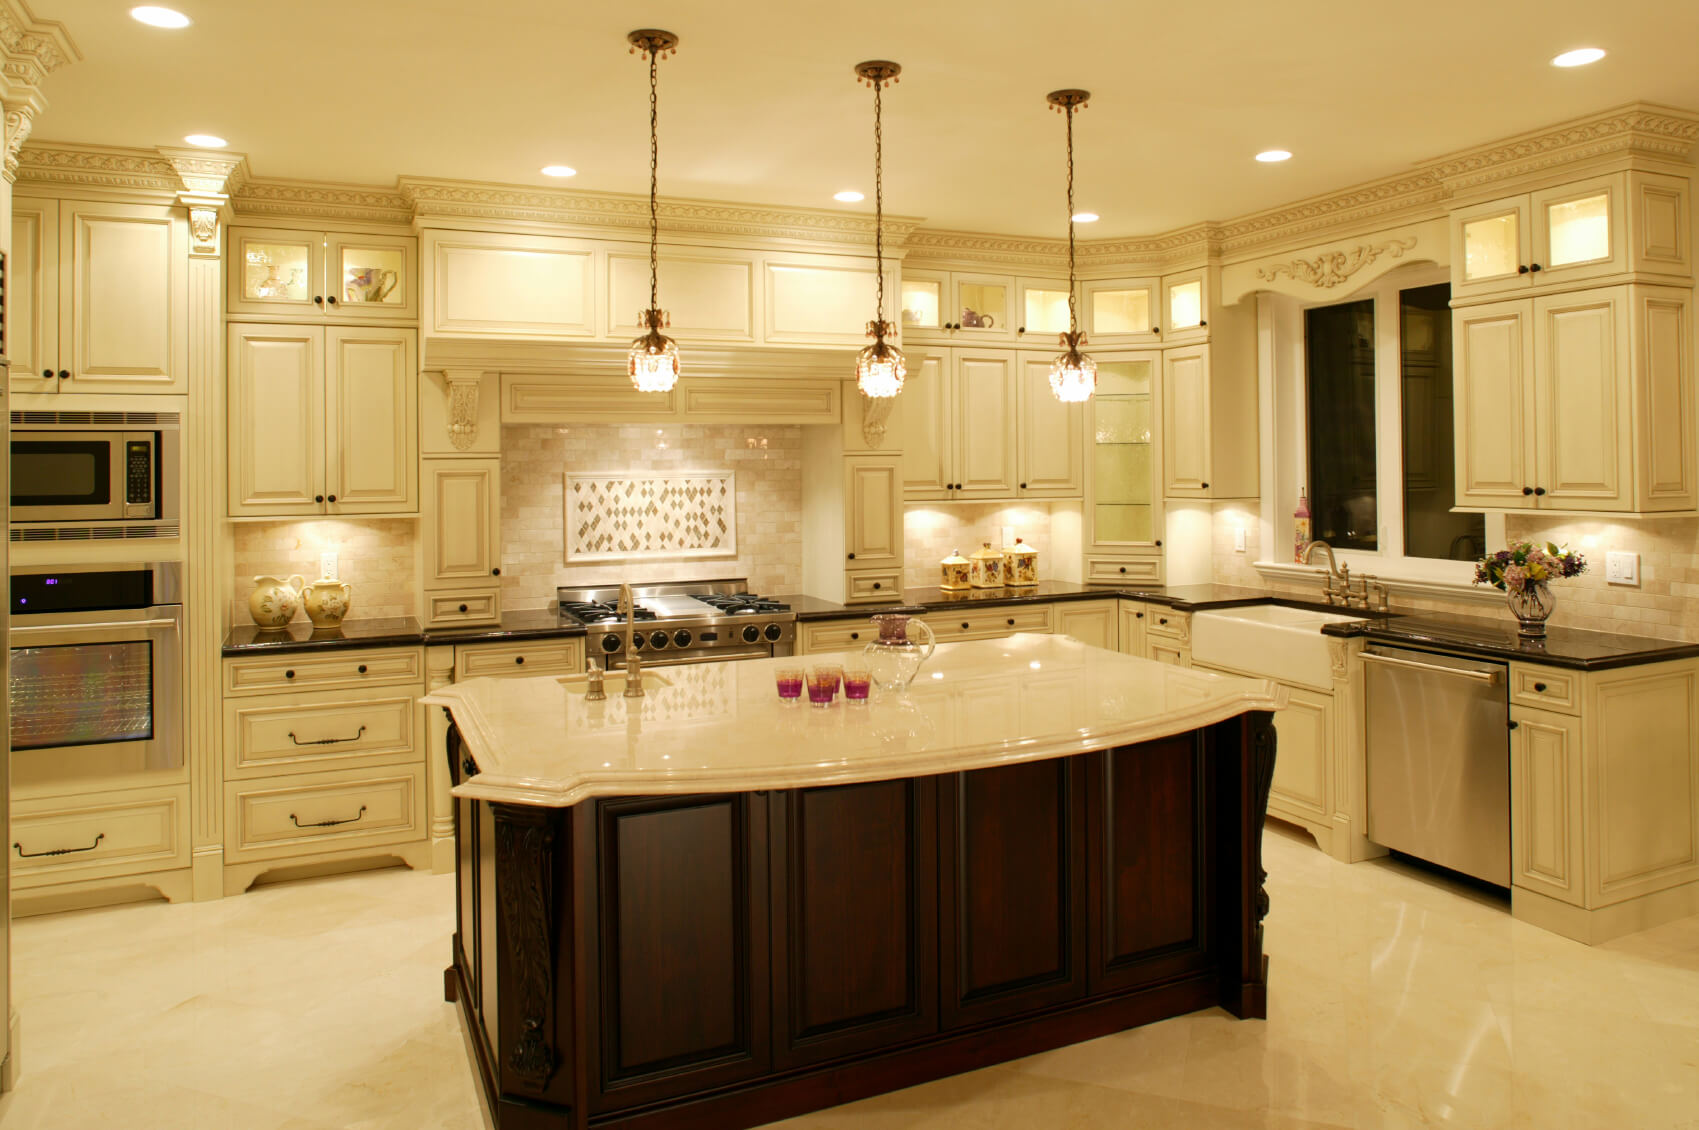 Luxurious Kitchen Awash In Light Marble Tones, Dominated By Large Dark Wood  Island With Filigreed